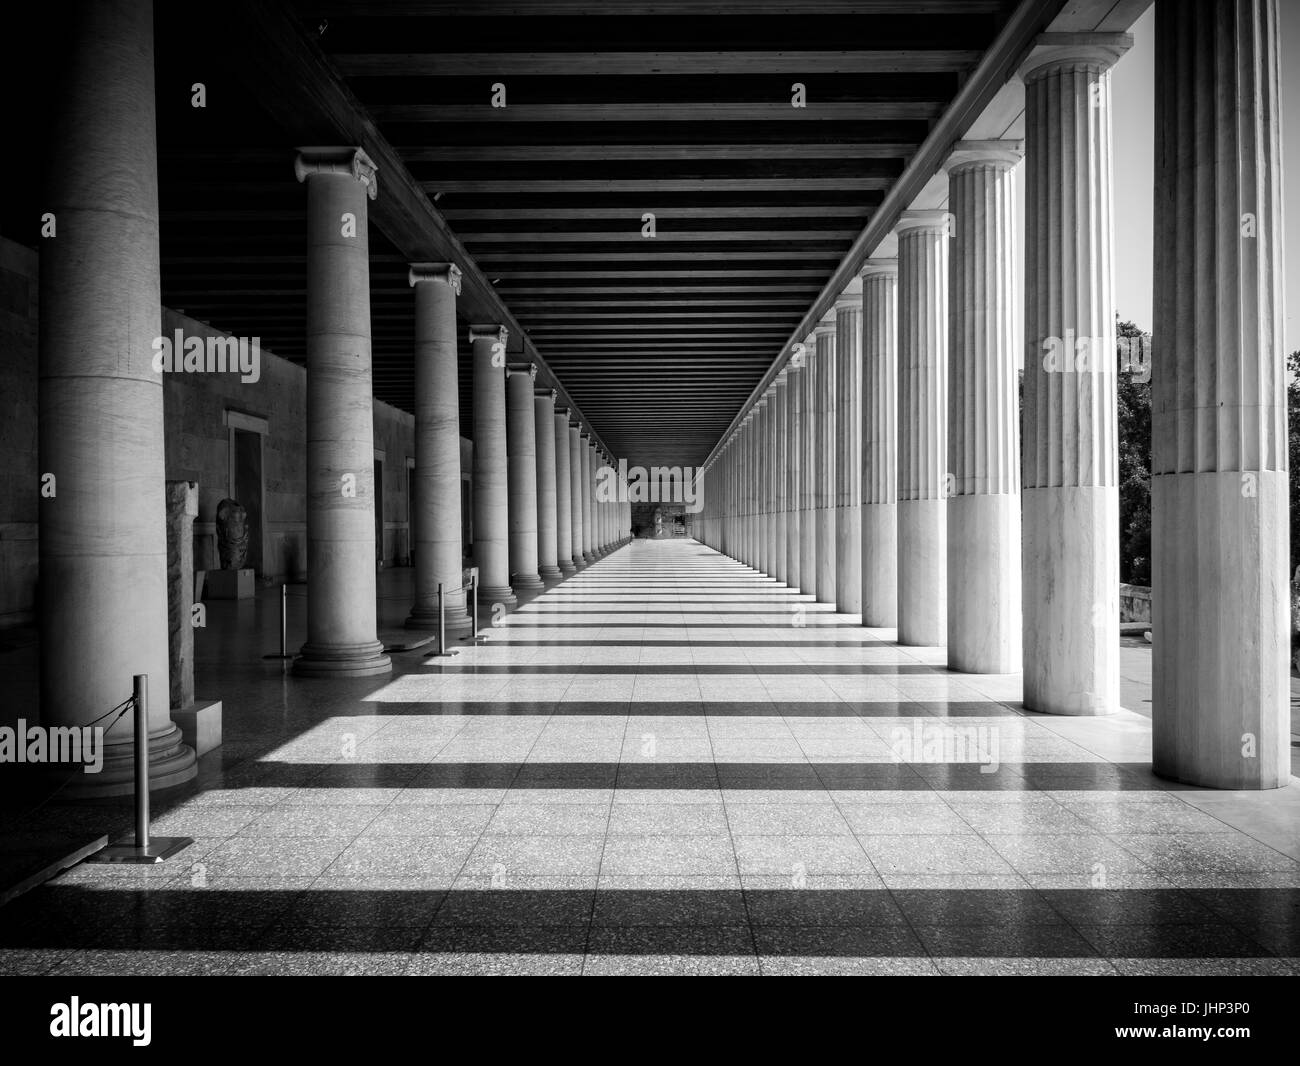 Columns at the Stoa of Attalos in the ancient Agora (Forum) of Athens - Stock Image